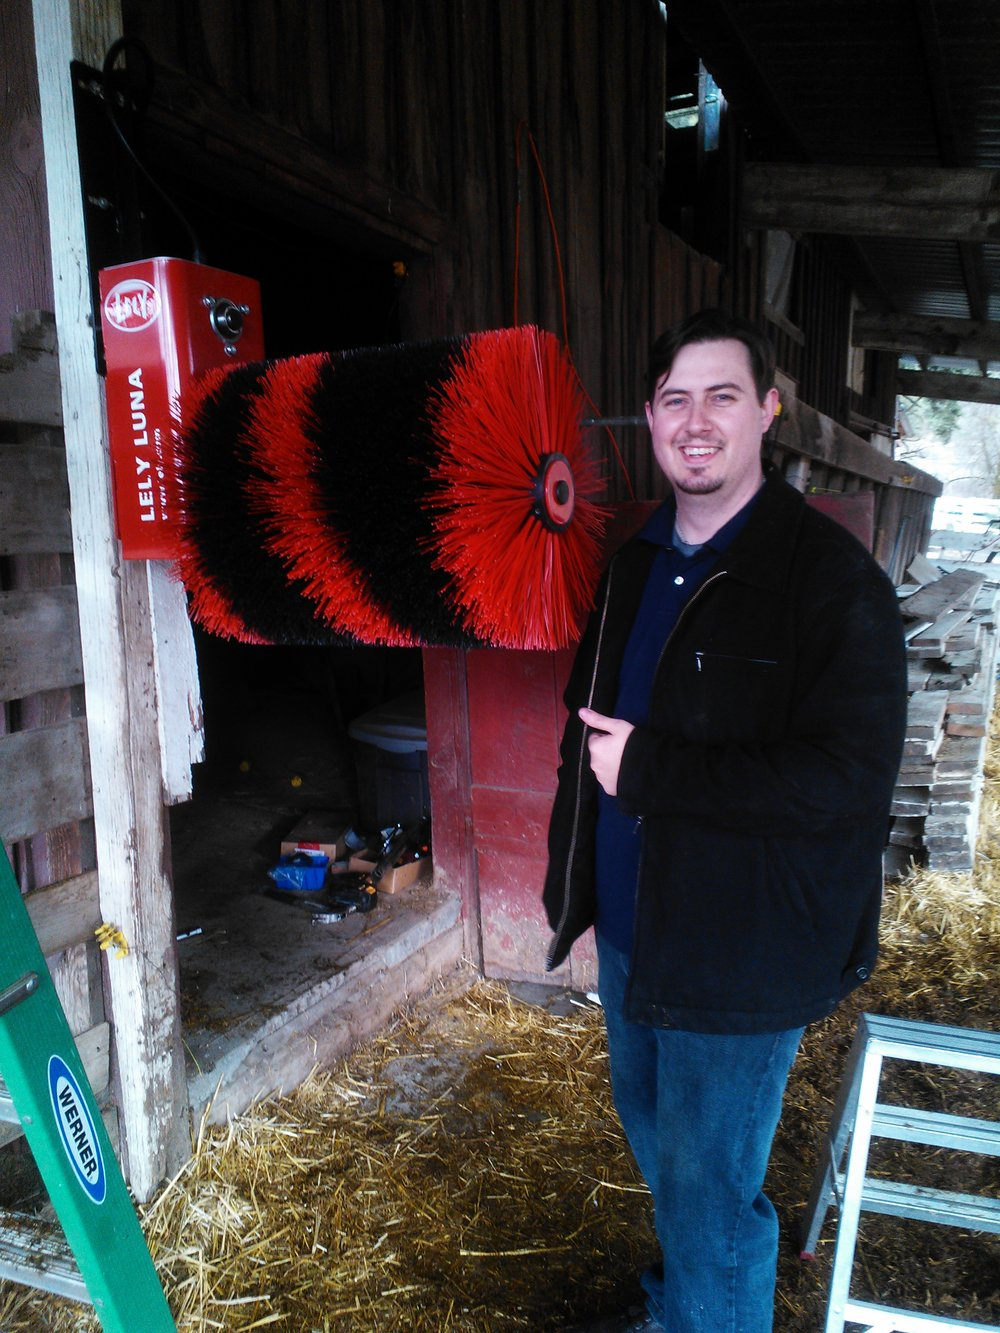 My buddy Eric helped get it set up at the old barn in 2014